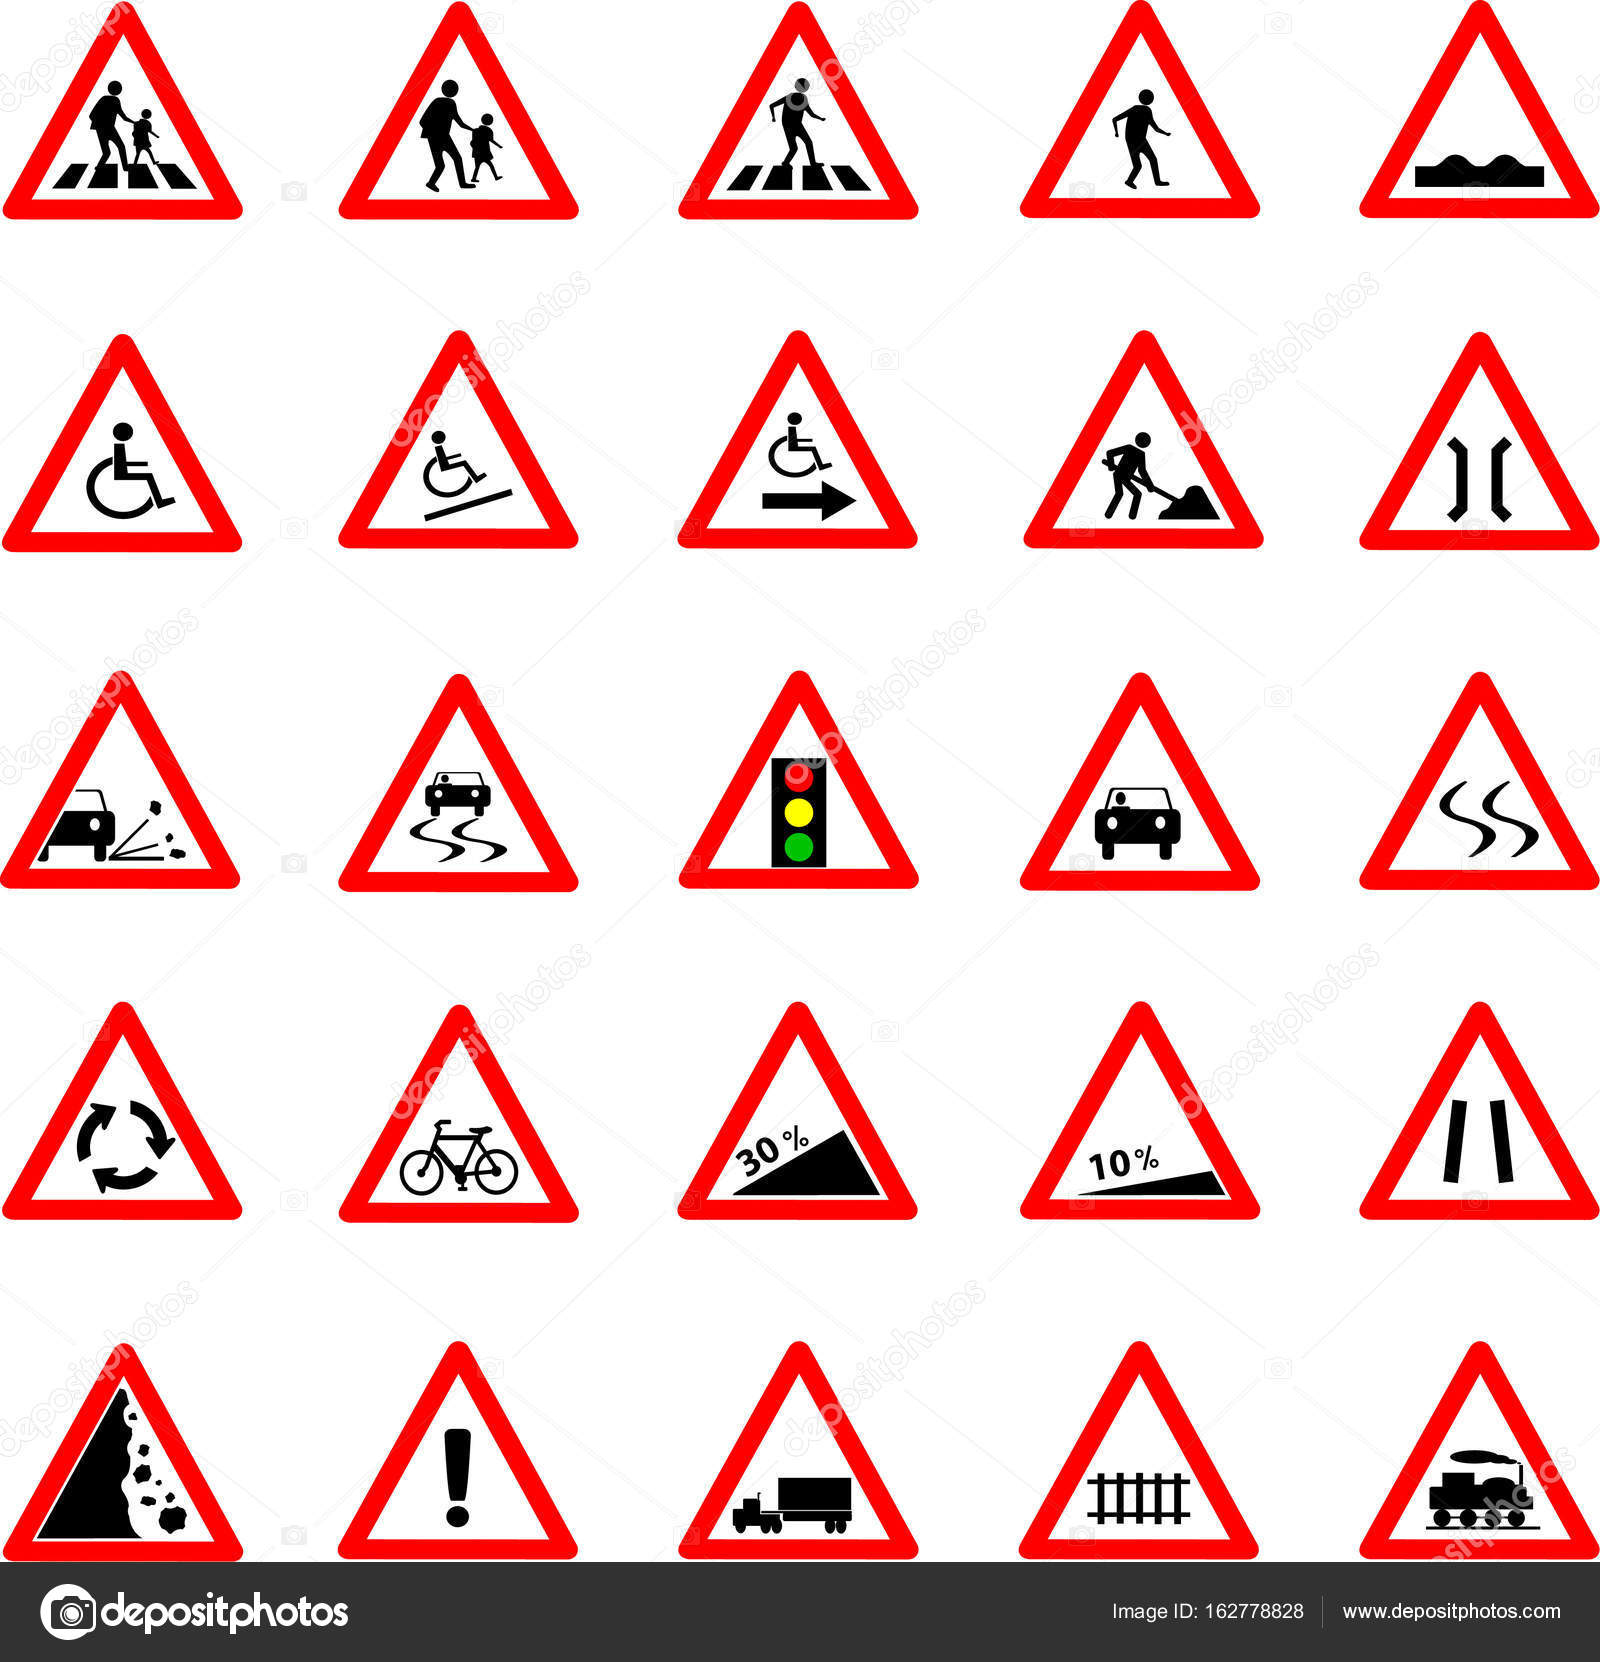 Triangle Road Signs >> Triangle Traffic And Road Sign Set Stock Vector C Stoonn 162778828